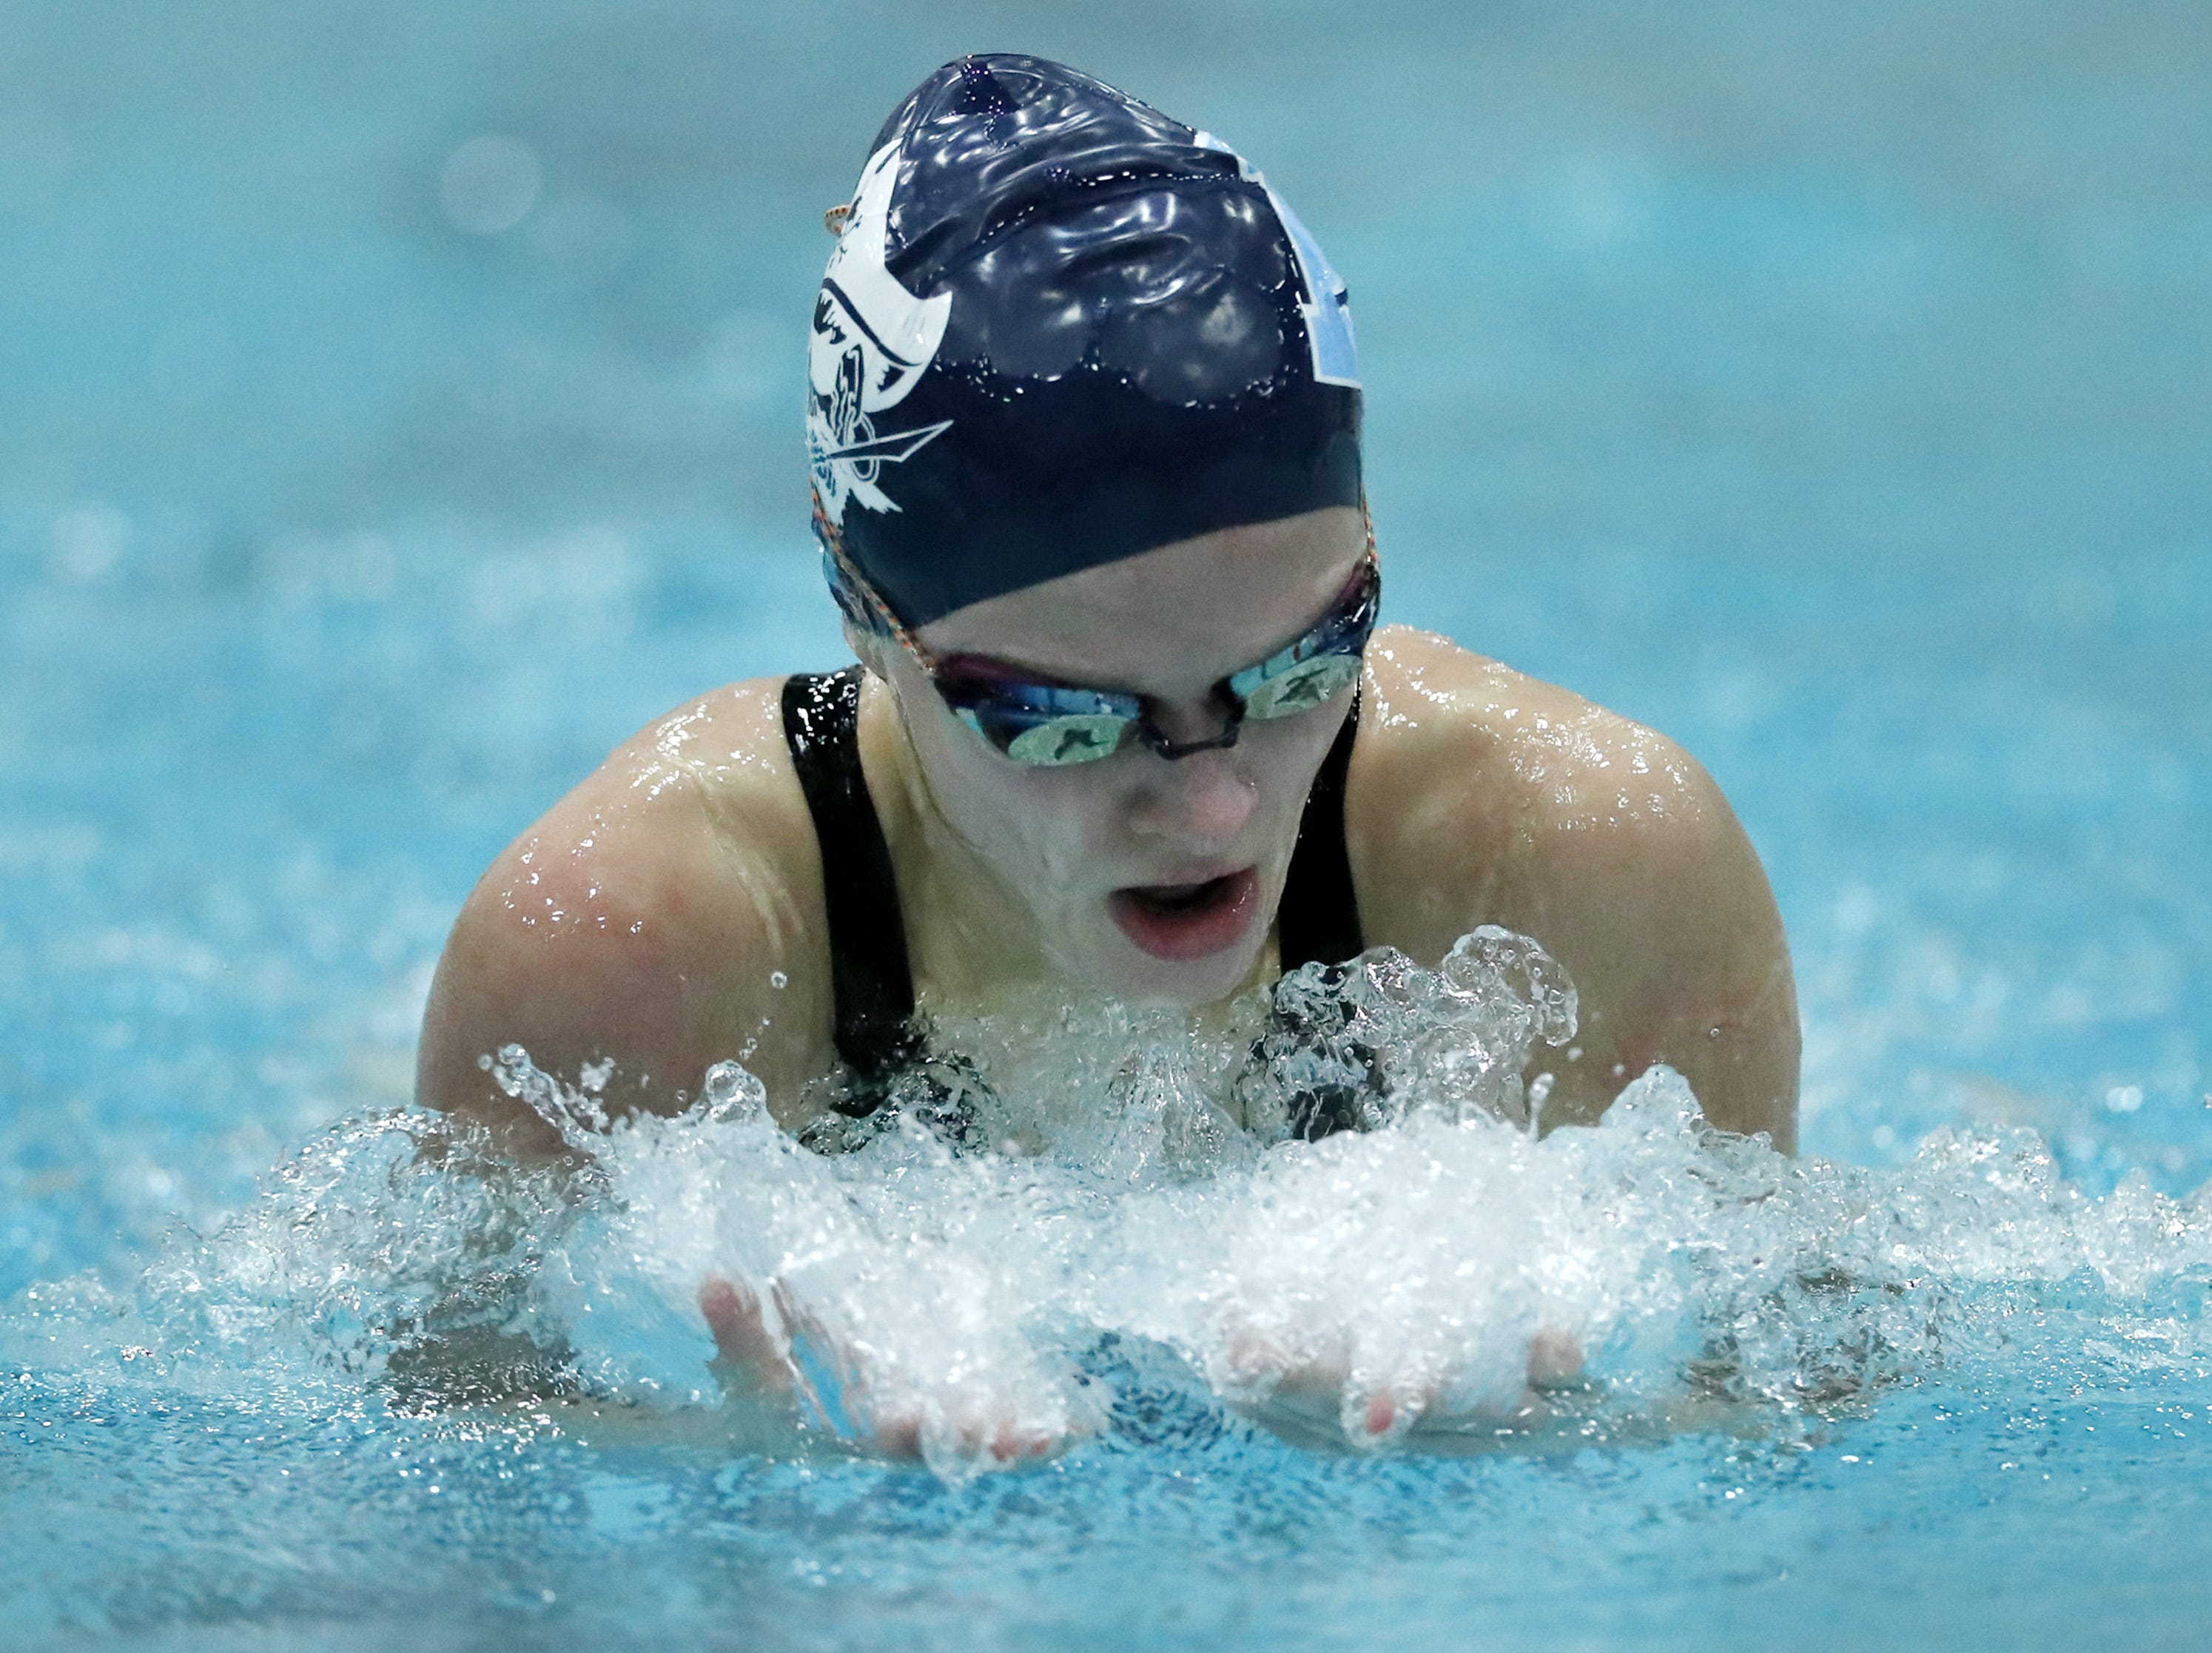 Bay PortÕs  Emma Lasecki races in the 200 yard individual medley during the WIAA Division 1 State Swimming and Diving meet Saturday, Nov. 10, 2018, at the UW Natatorium in Madison, Wis. Danny Damiani/USA TODAY NETWORK-Wisconsin